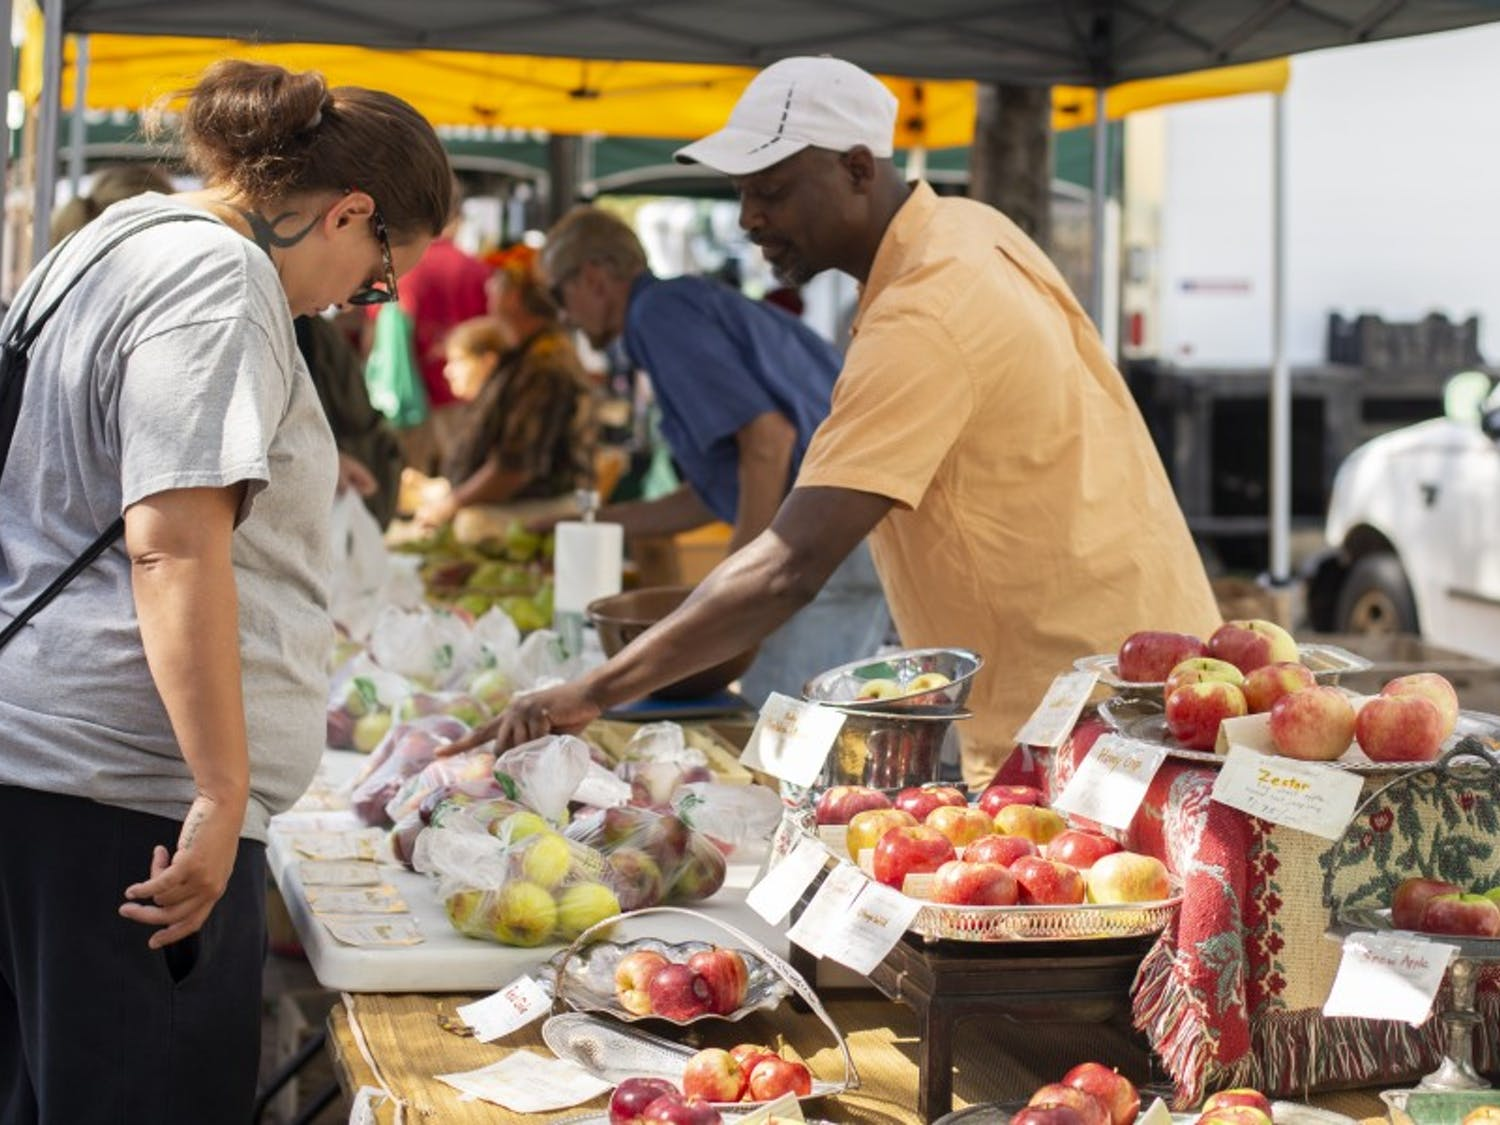 Madison's first public market promises to showcase many locally grown and prepared foods, along with handcrafted artwork.